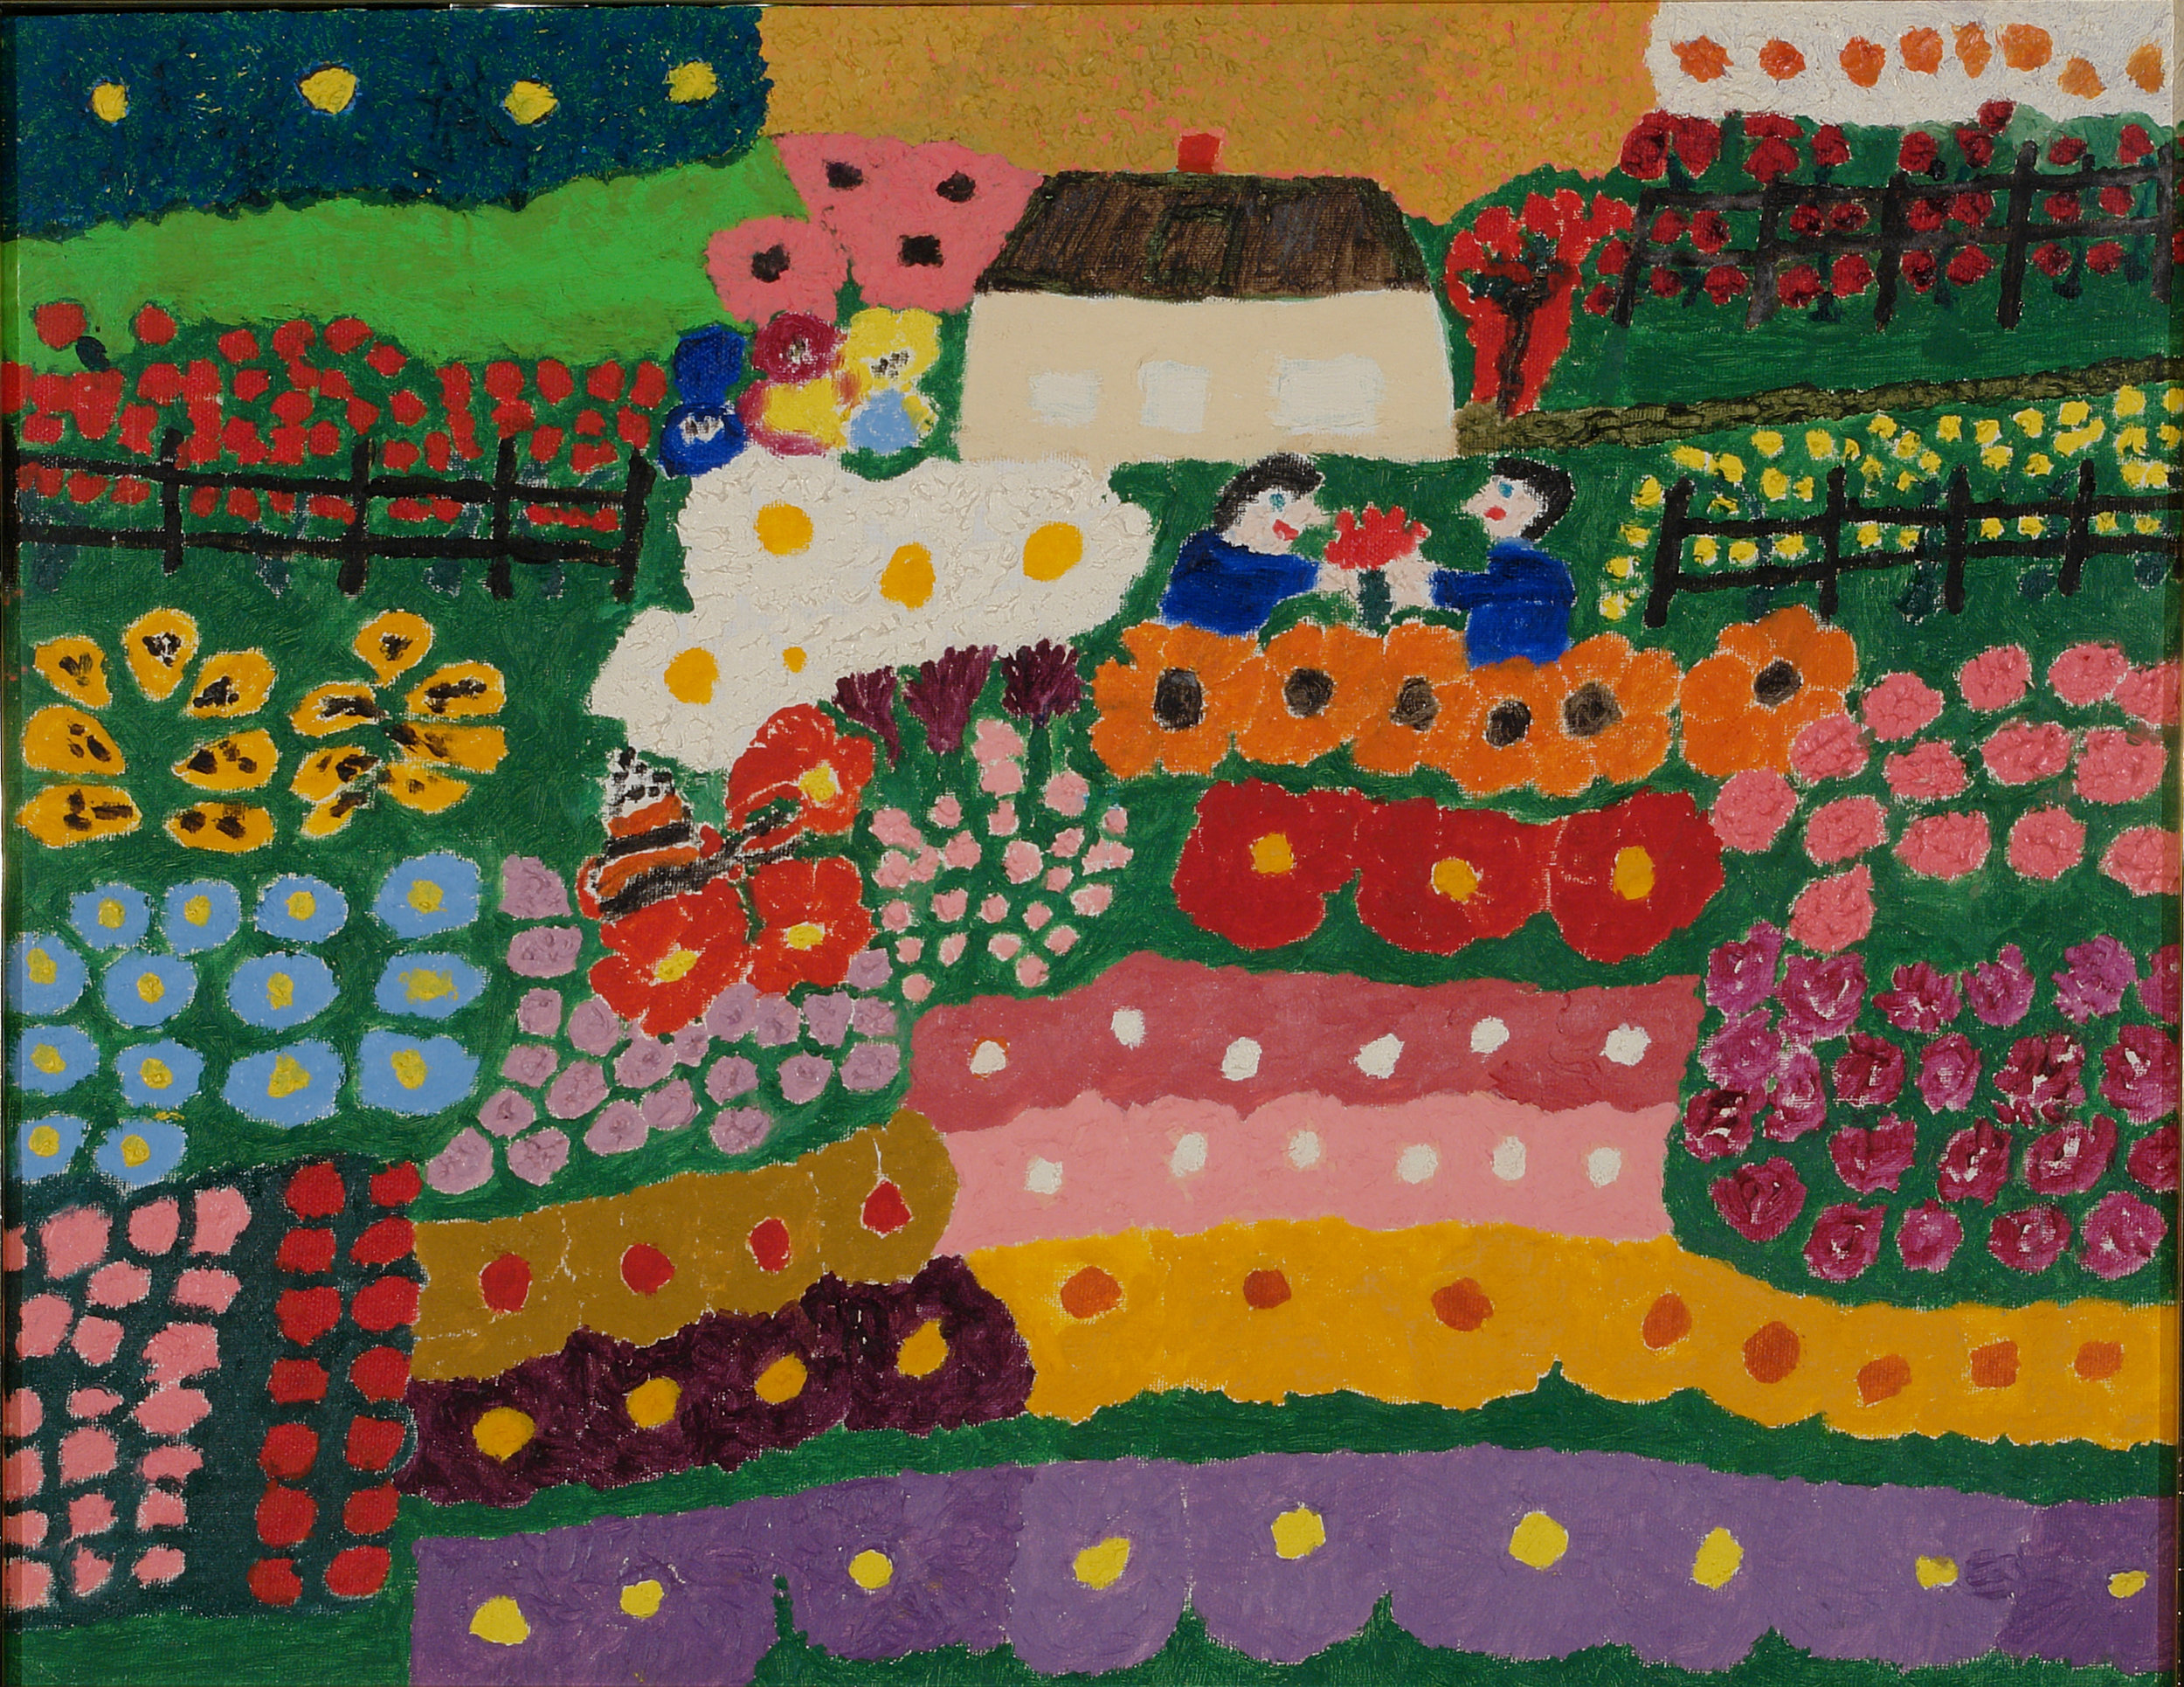 Mary Eveland (American, 1896-1981).  Flower Garden and House , ca. 1976-1980. Oil on board, 14 x 18 in. Intuit: The Center for Intuitive and Outsider Art, gift of Merle Glick, 2007.12.11